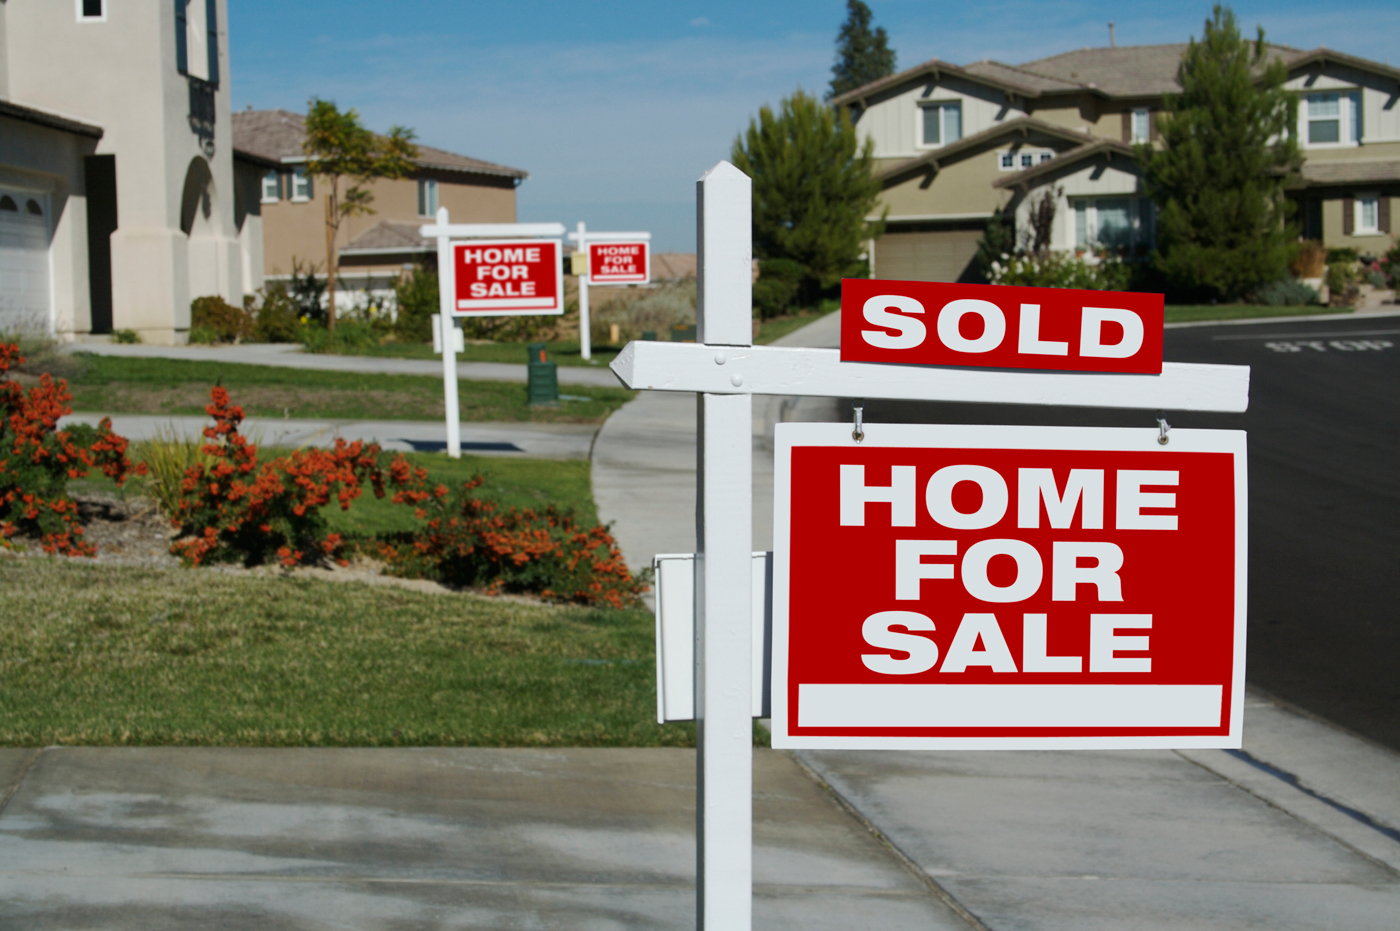 homes sold home sale report 804548